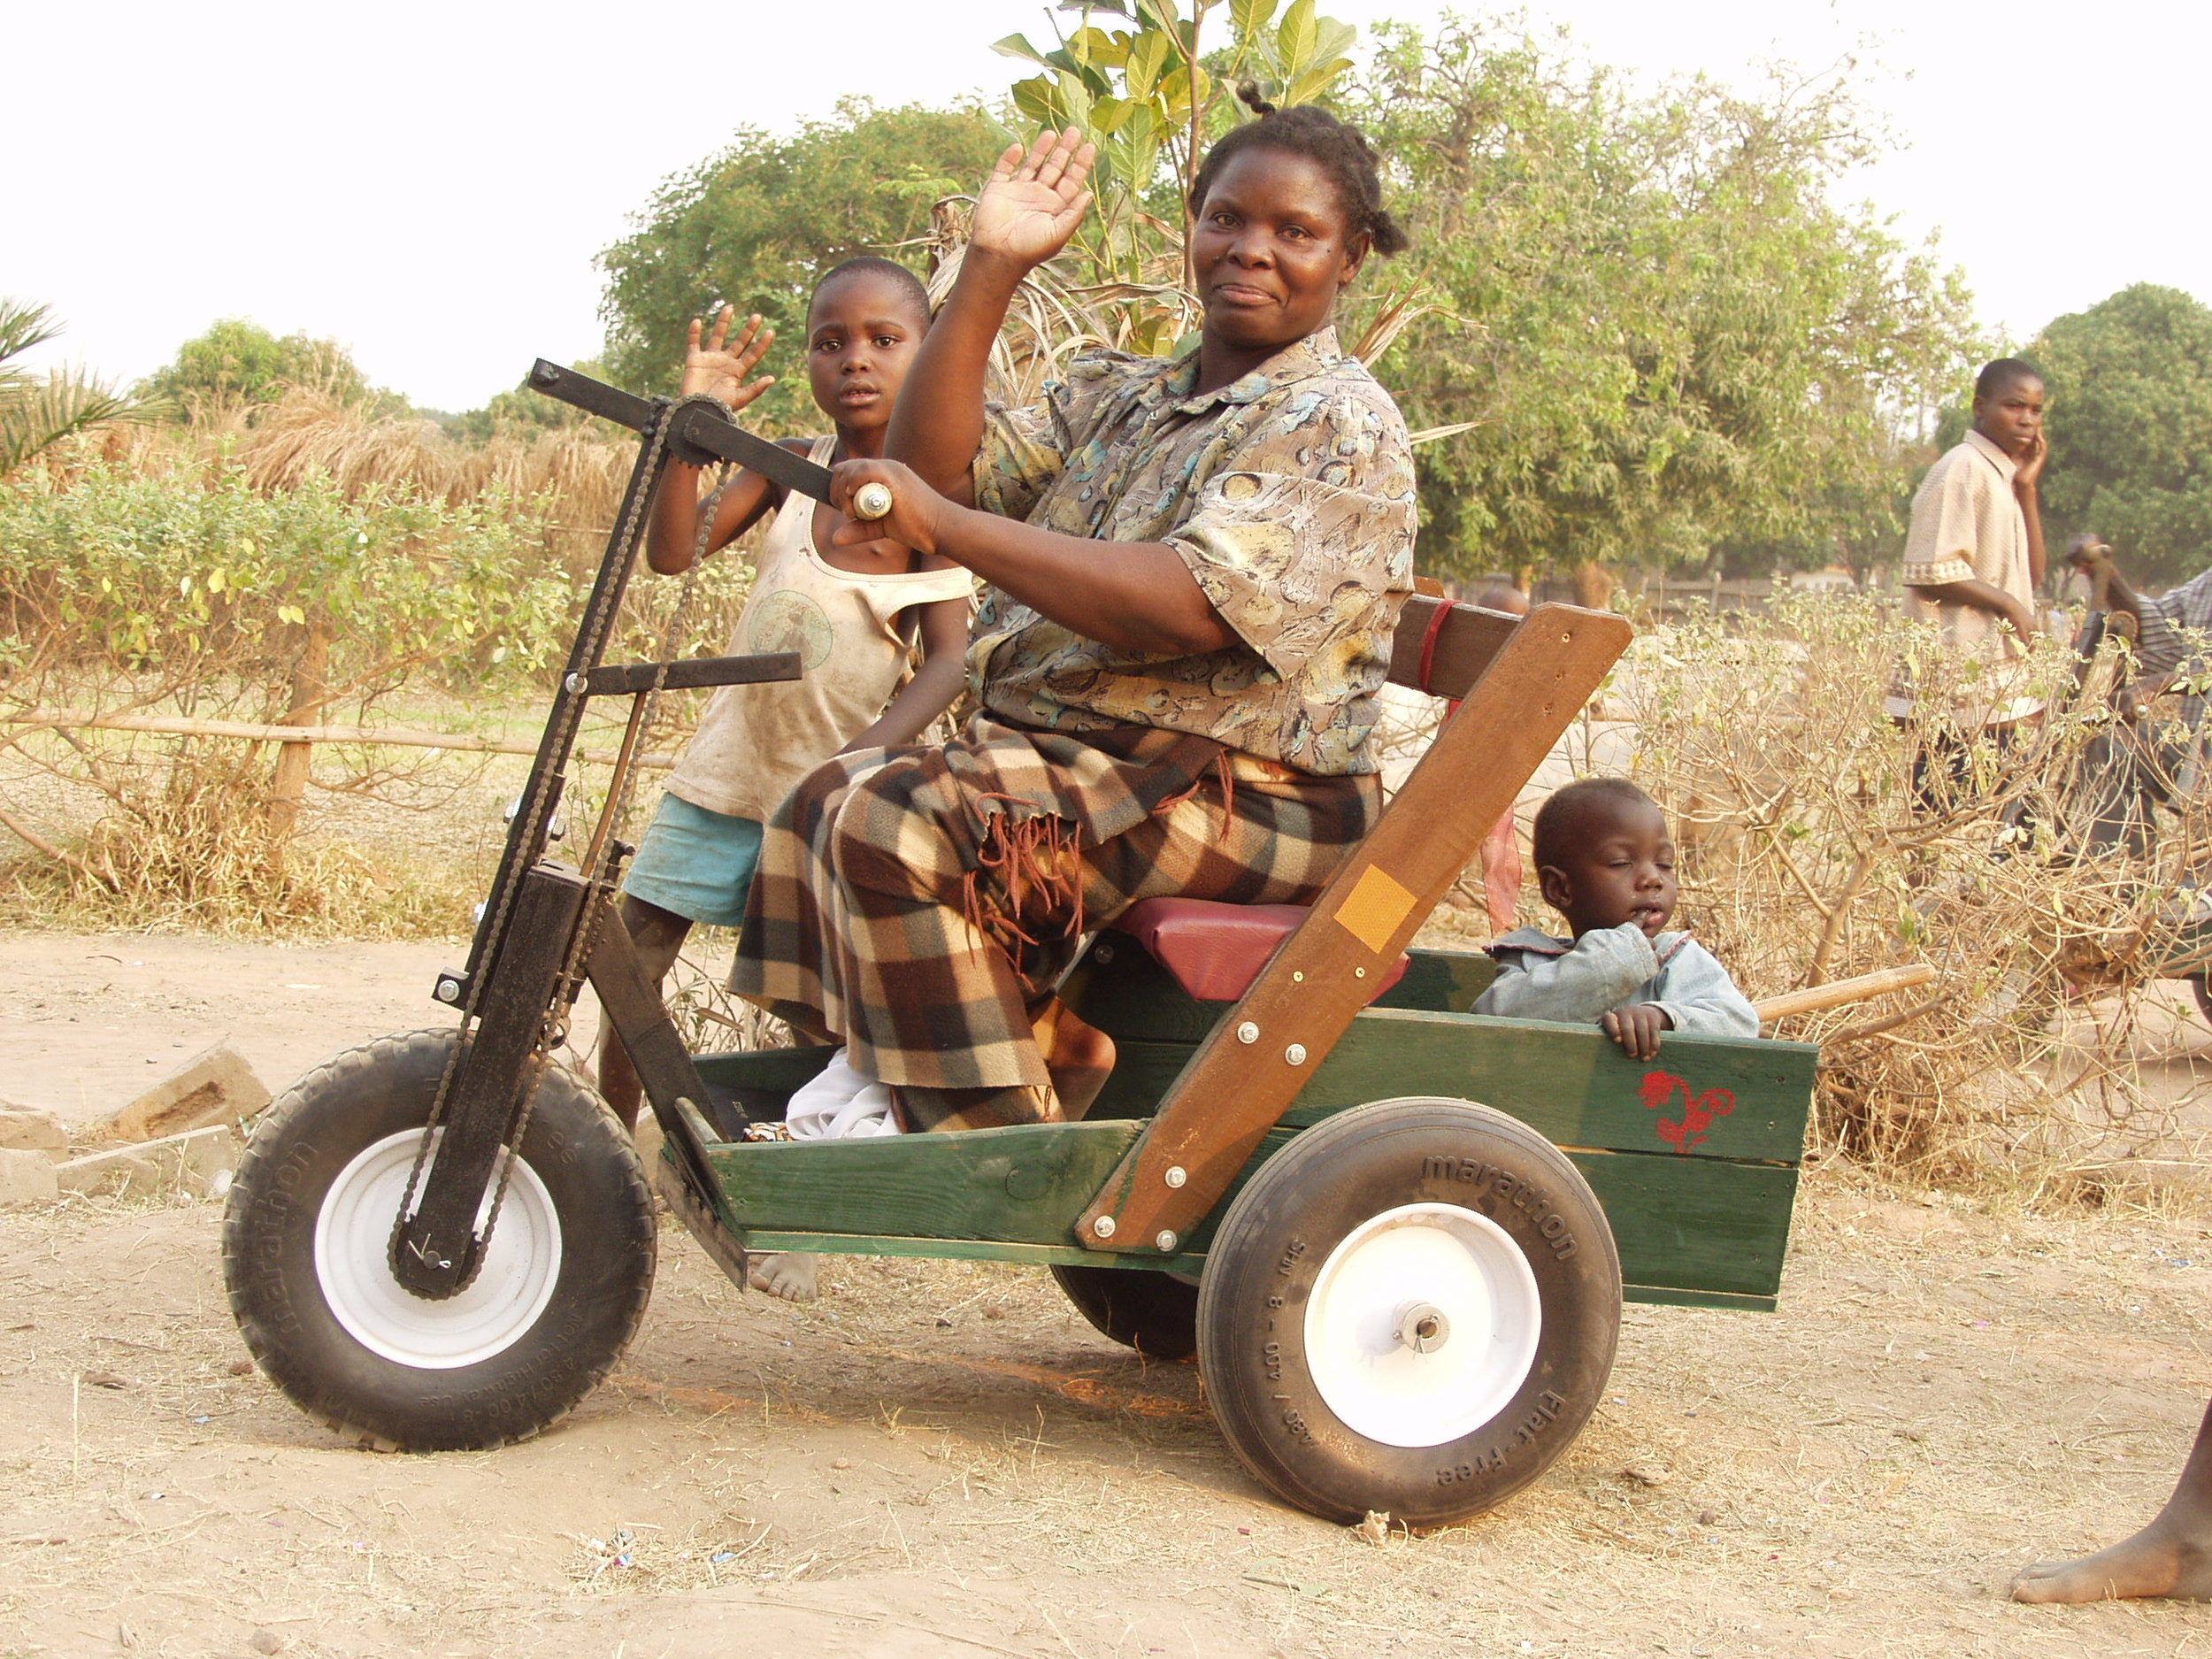 PETs needed - Personal Energy Transportation carts were first distributed in Kazembe in 2010 by HFTW and changed lives by providing mobility to people with disabilities. More carts are needed badly needed at this time. The carts are available at no cost but transportation expenses from Kitwe to Kazembe must be covered.